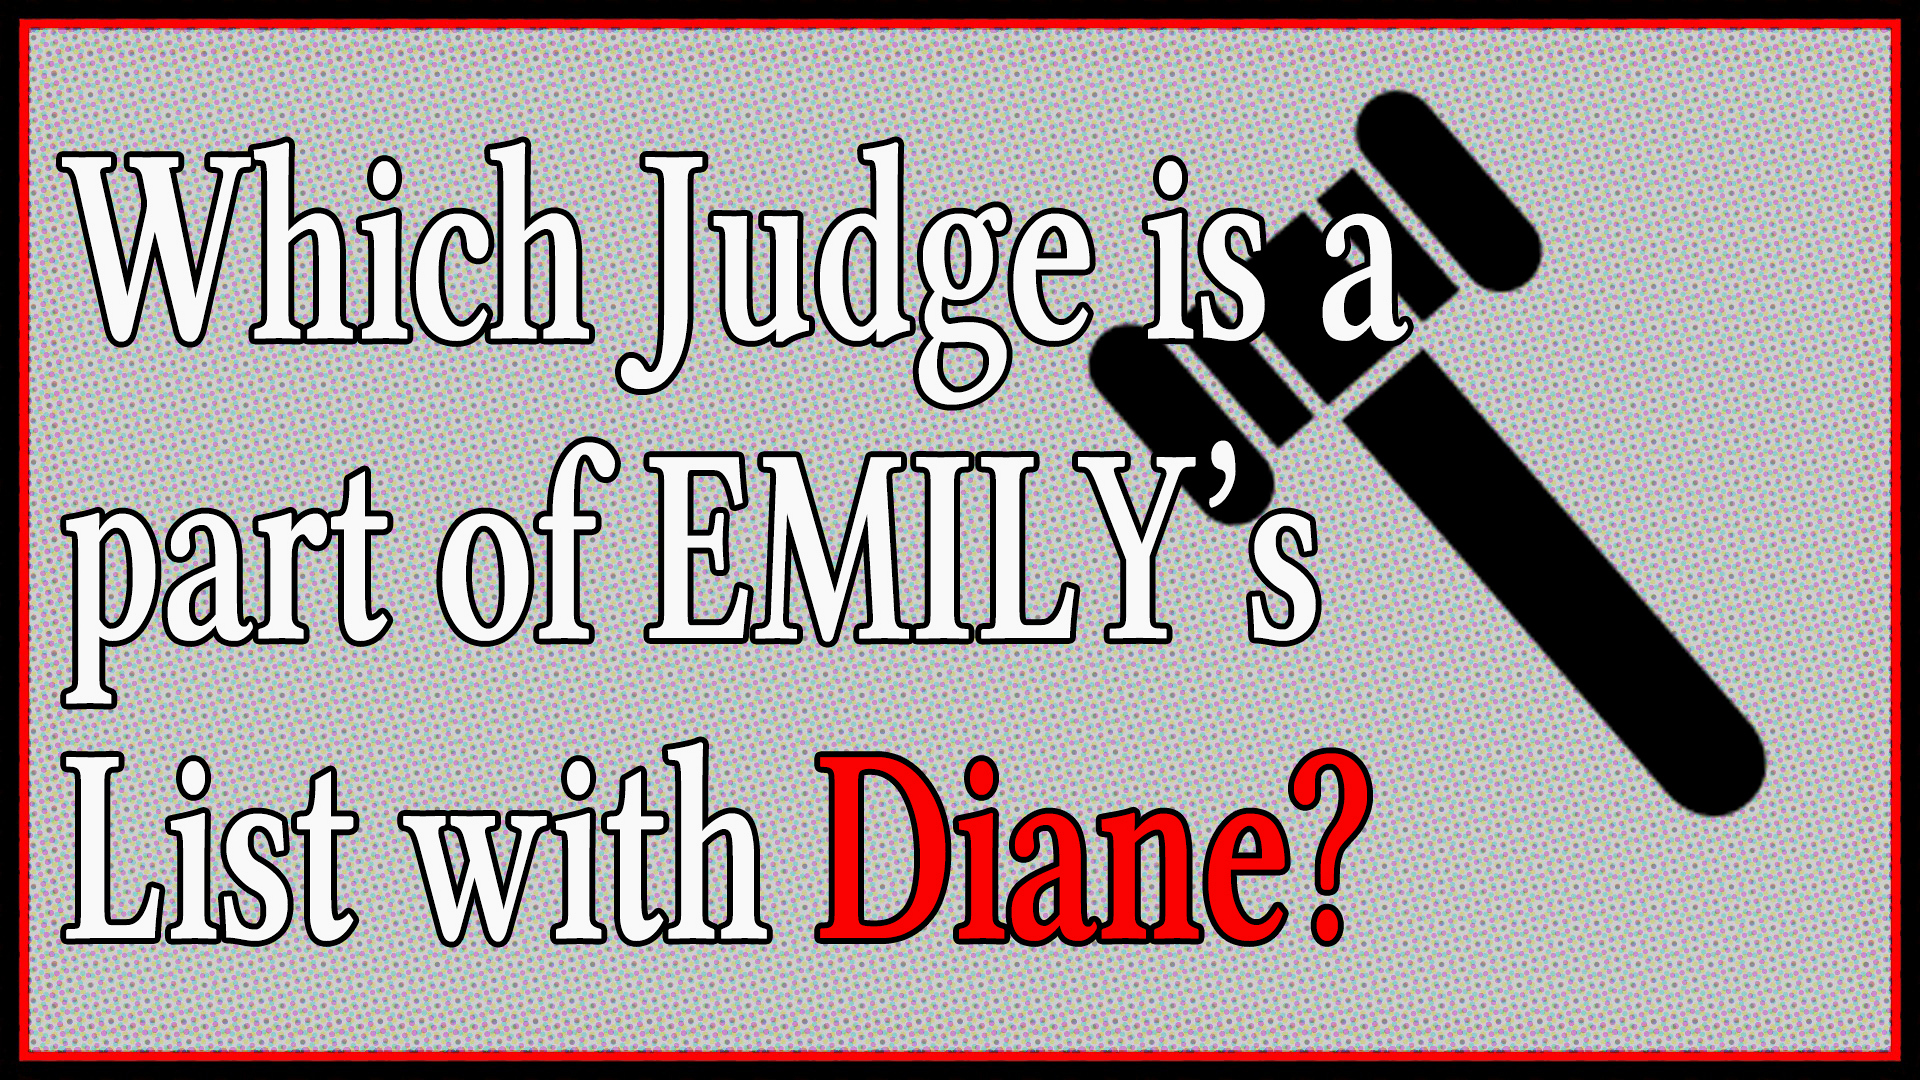 Which judge is a part of EMILY's List with Diane?